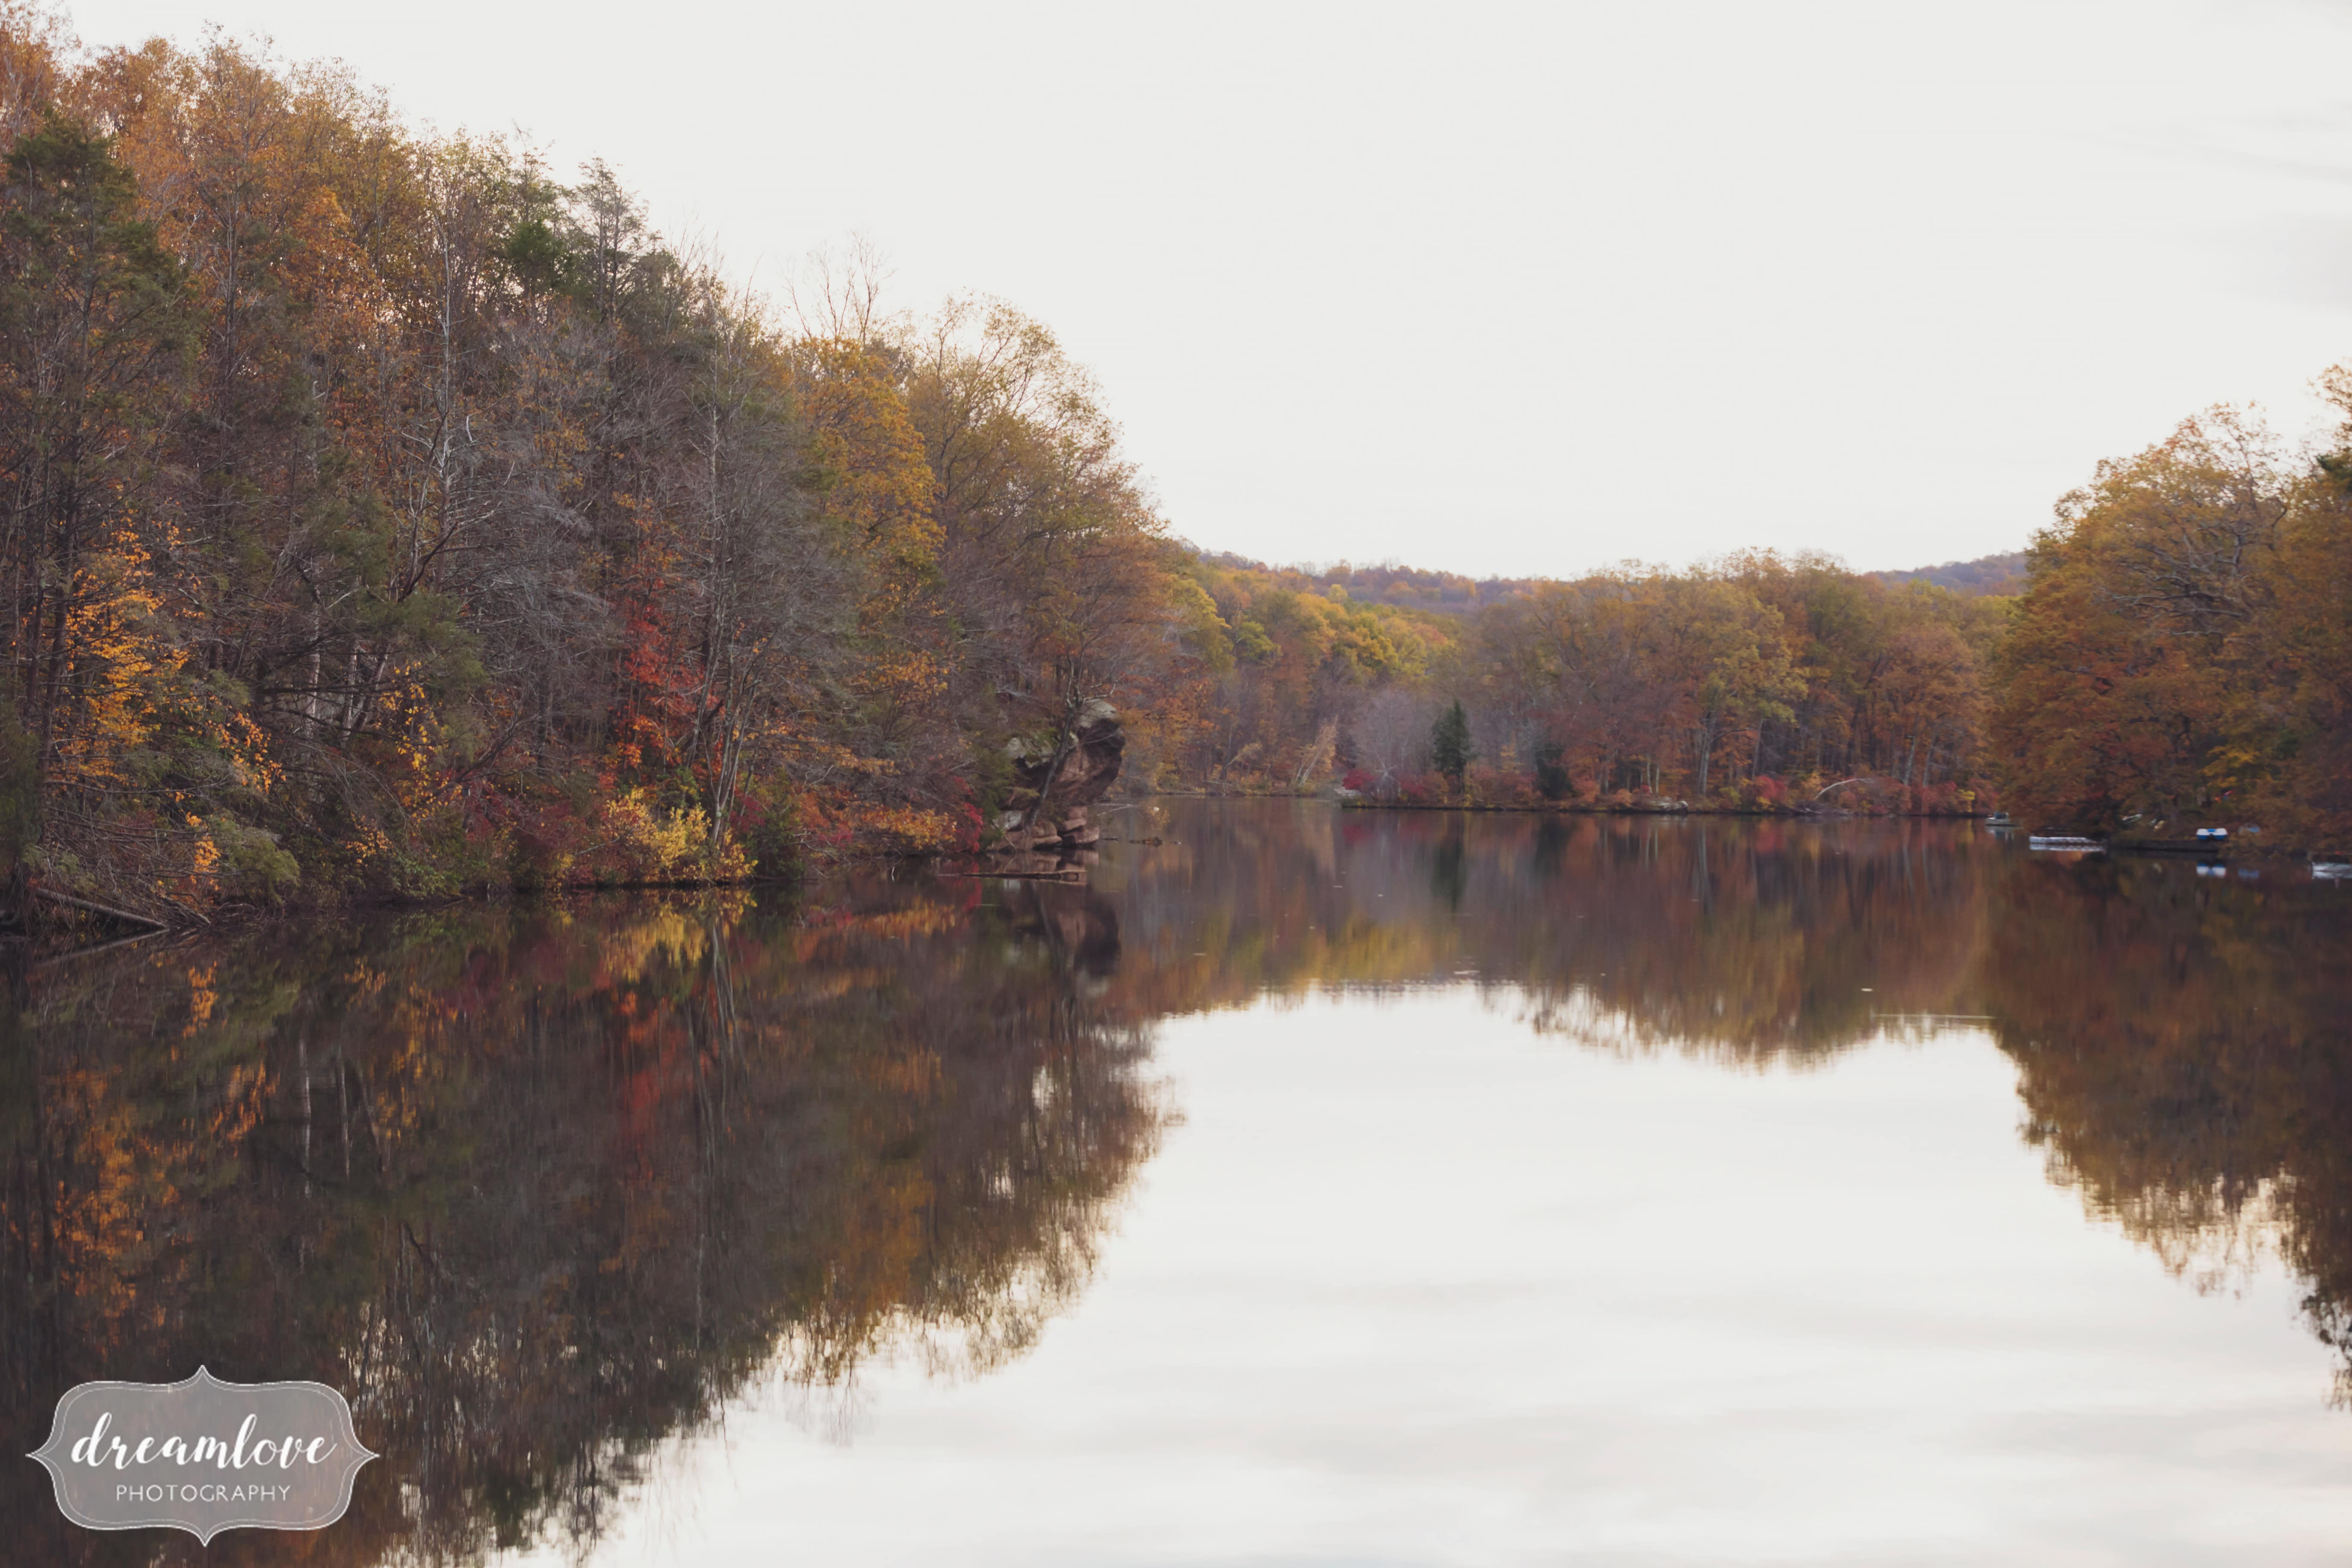 The lake surrounded by fall foliage at the Pavilion on Crystal Lake wedding venue in CT.